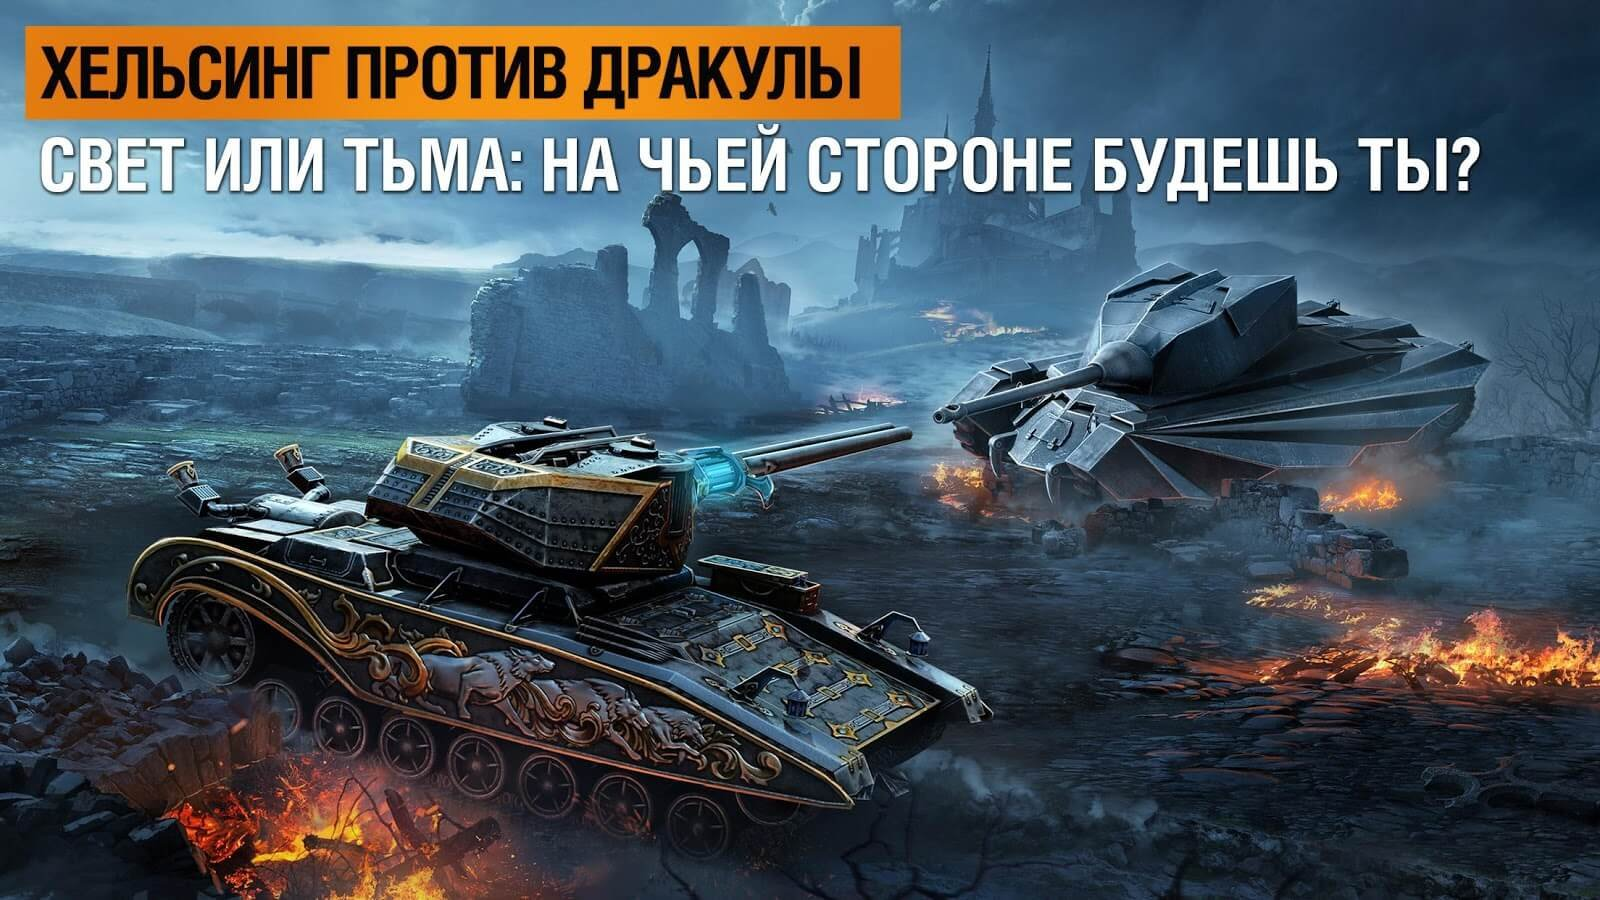 Играть tanks of world через frontline 2020 april